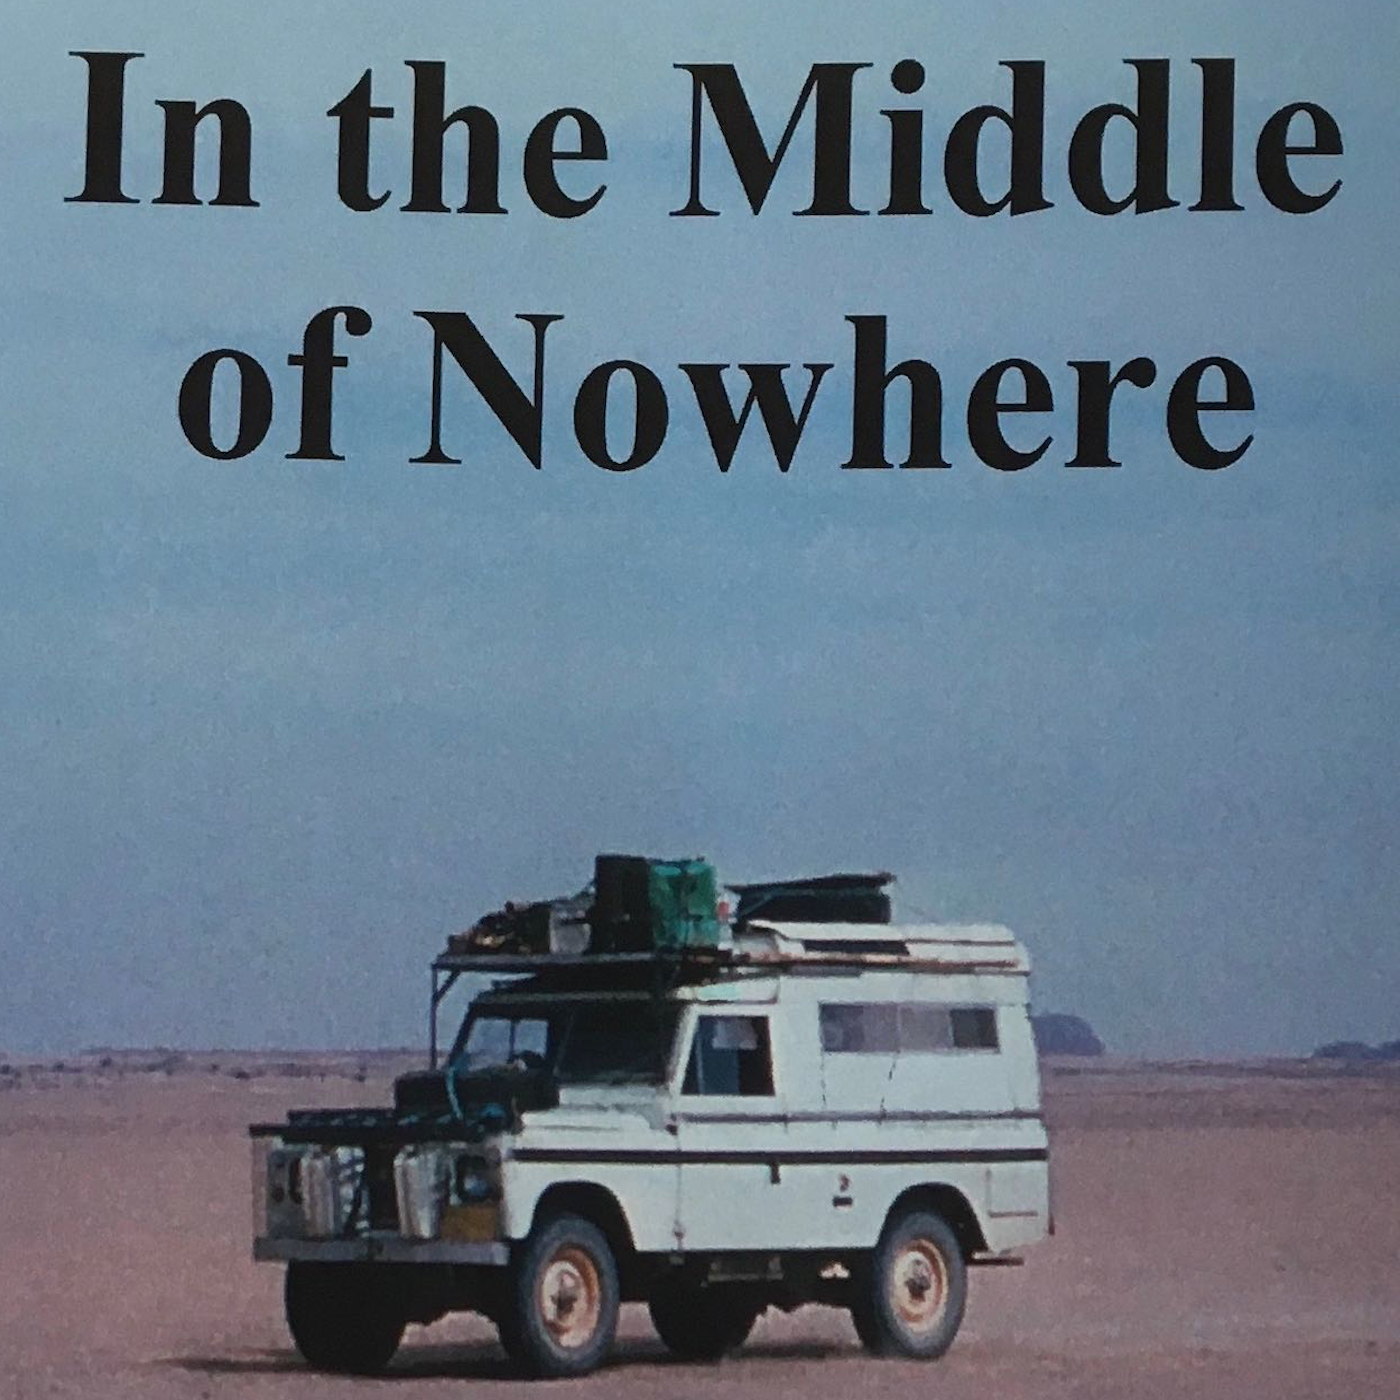 In the Middle of Nowhere - Peter Fleming-08-09-2019